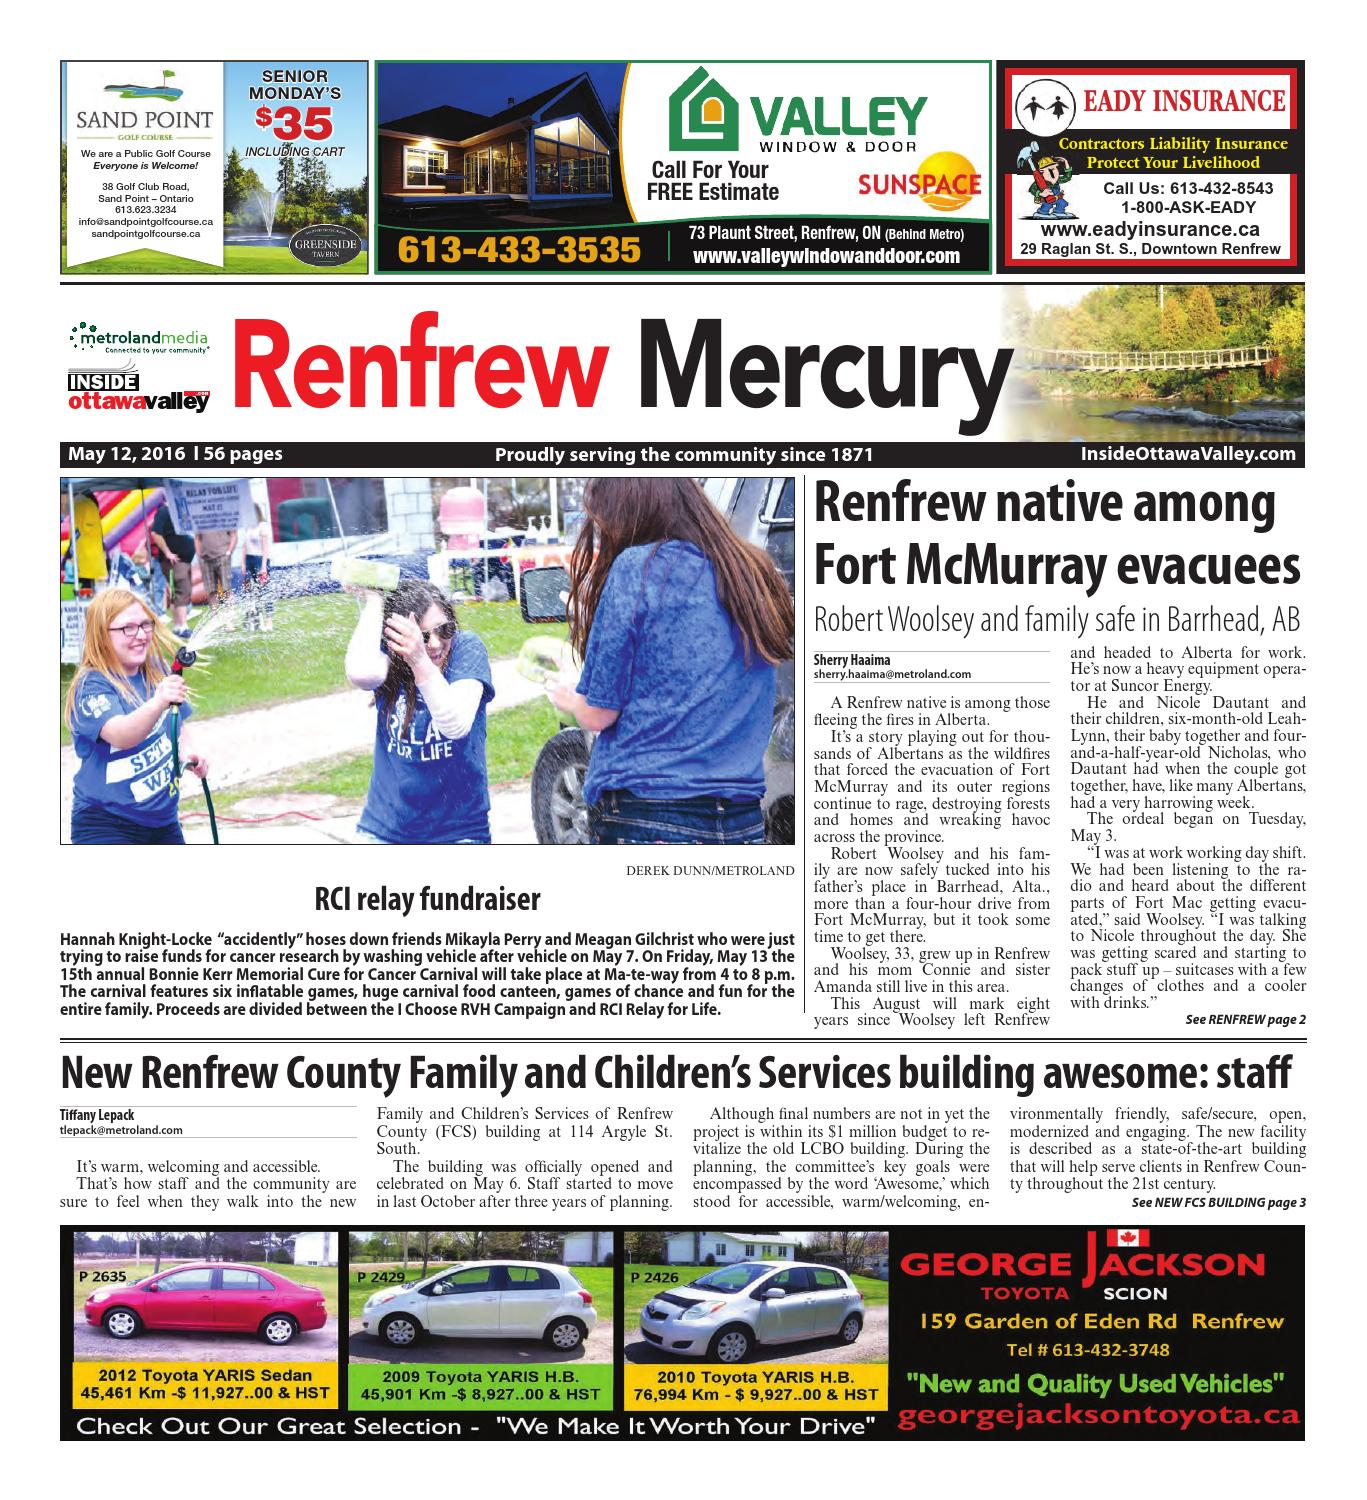 Renfrew051216 By Metroland East Renfrew Mercury Issuu How To Turn Your Truck Into A Generator The Family Handyman